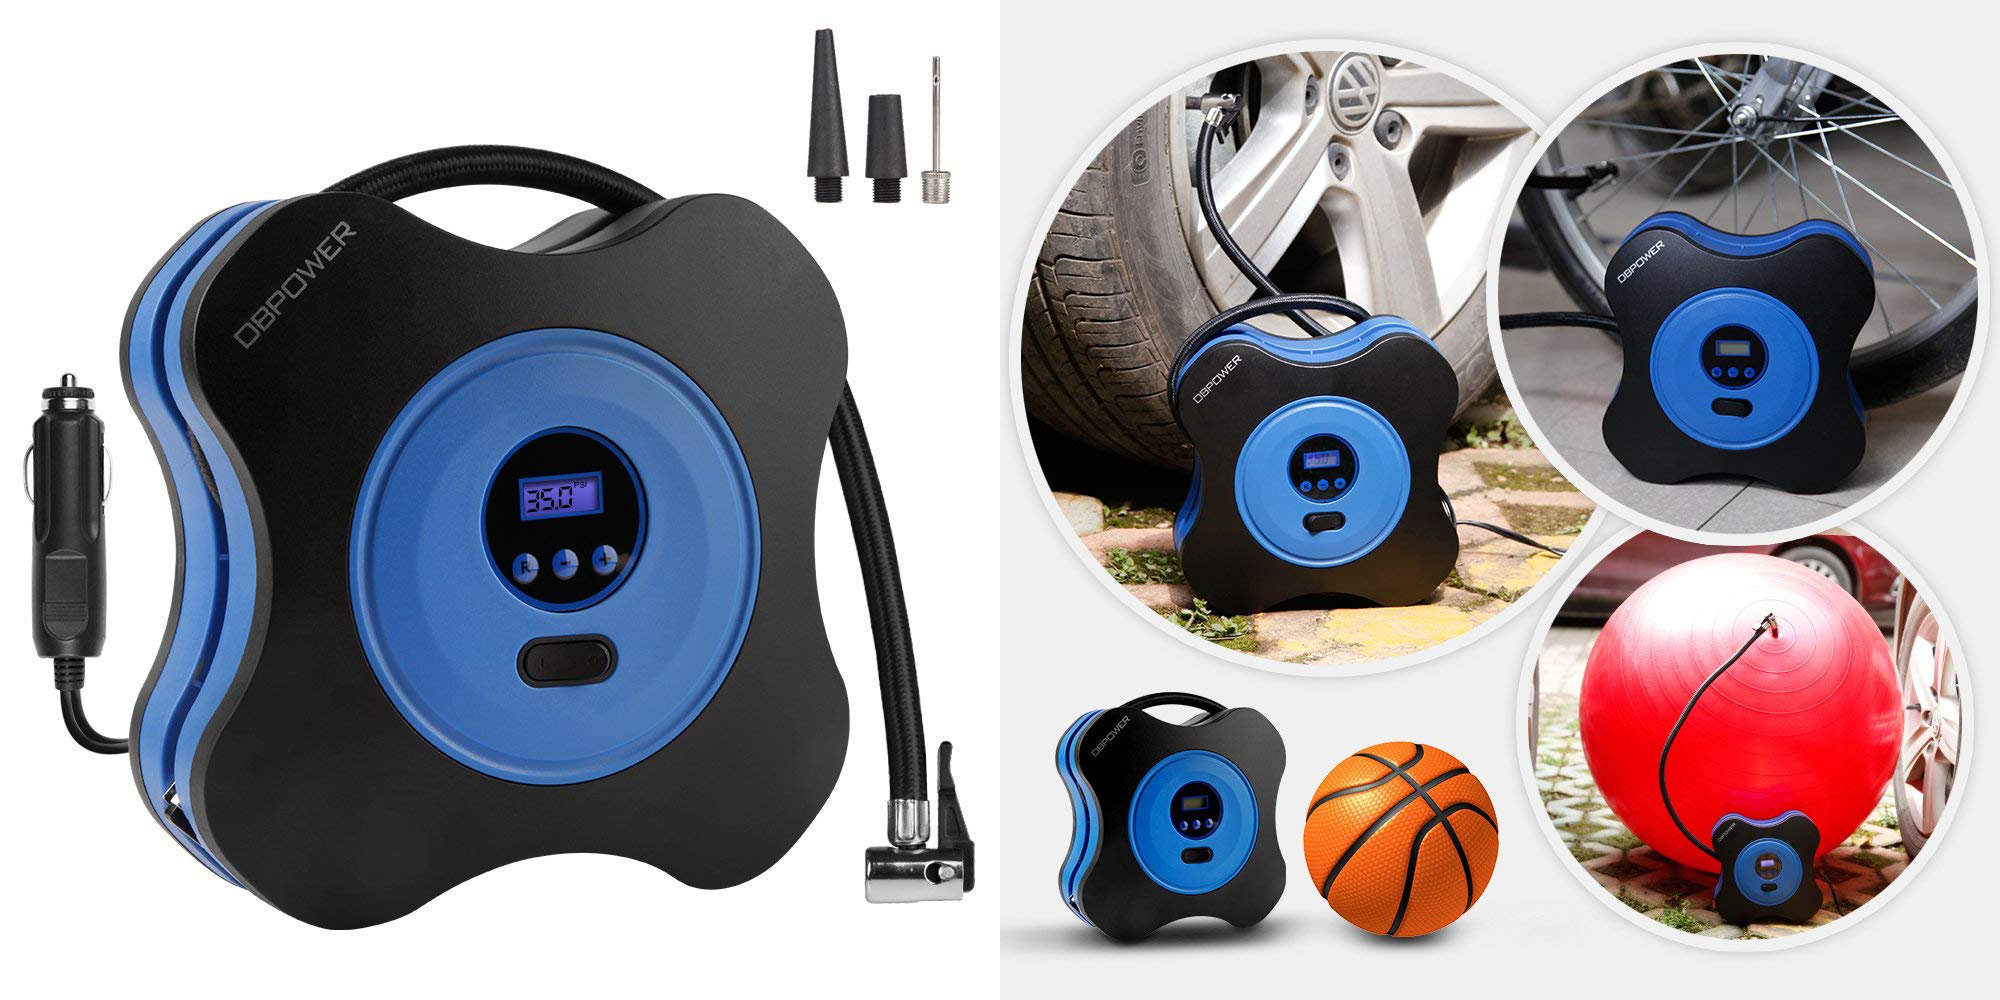 Set the PSI and let this tire inflator do the rest: $15 at Amazon (Reg. $20)